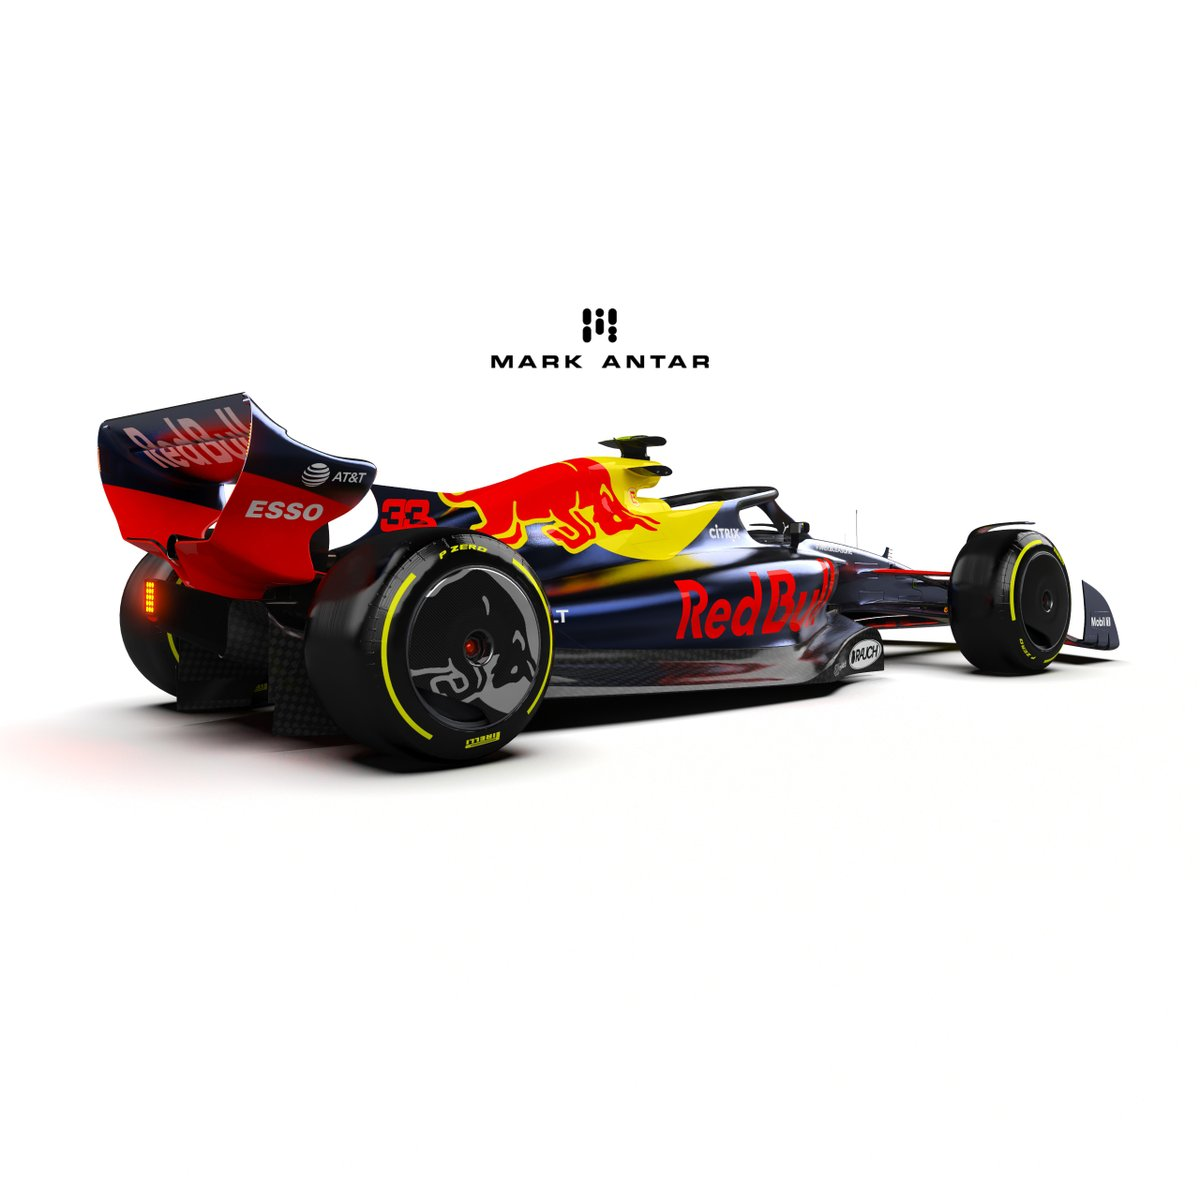 """Mark Antar Design on Twitter: """"2022 Red Bull Racing Livery concept. Will  they go back with Renault for PUs? 3D model by @RaceSimStudio #F1 #F12022 # RedBull #RedBullRacing #LiveryDesign… https://t.co/RgzsBuea6Q"""""""